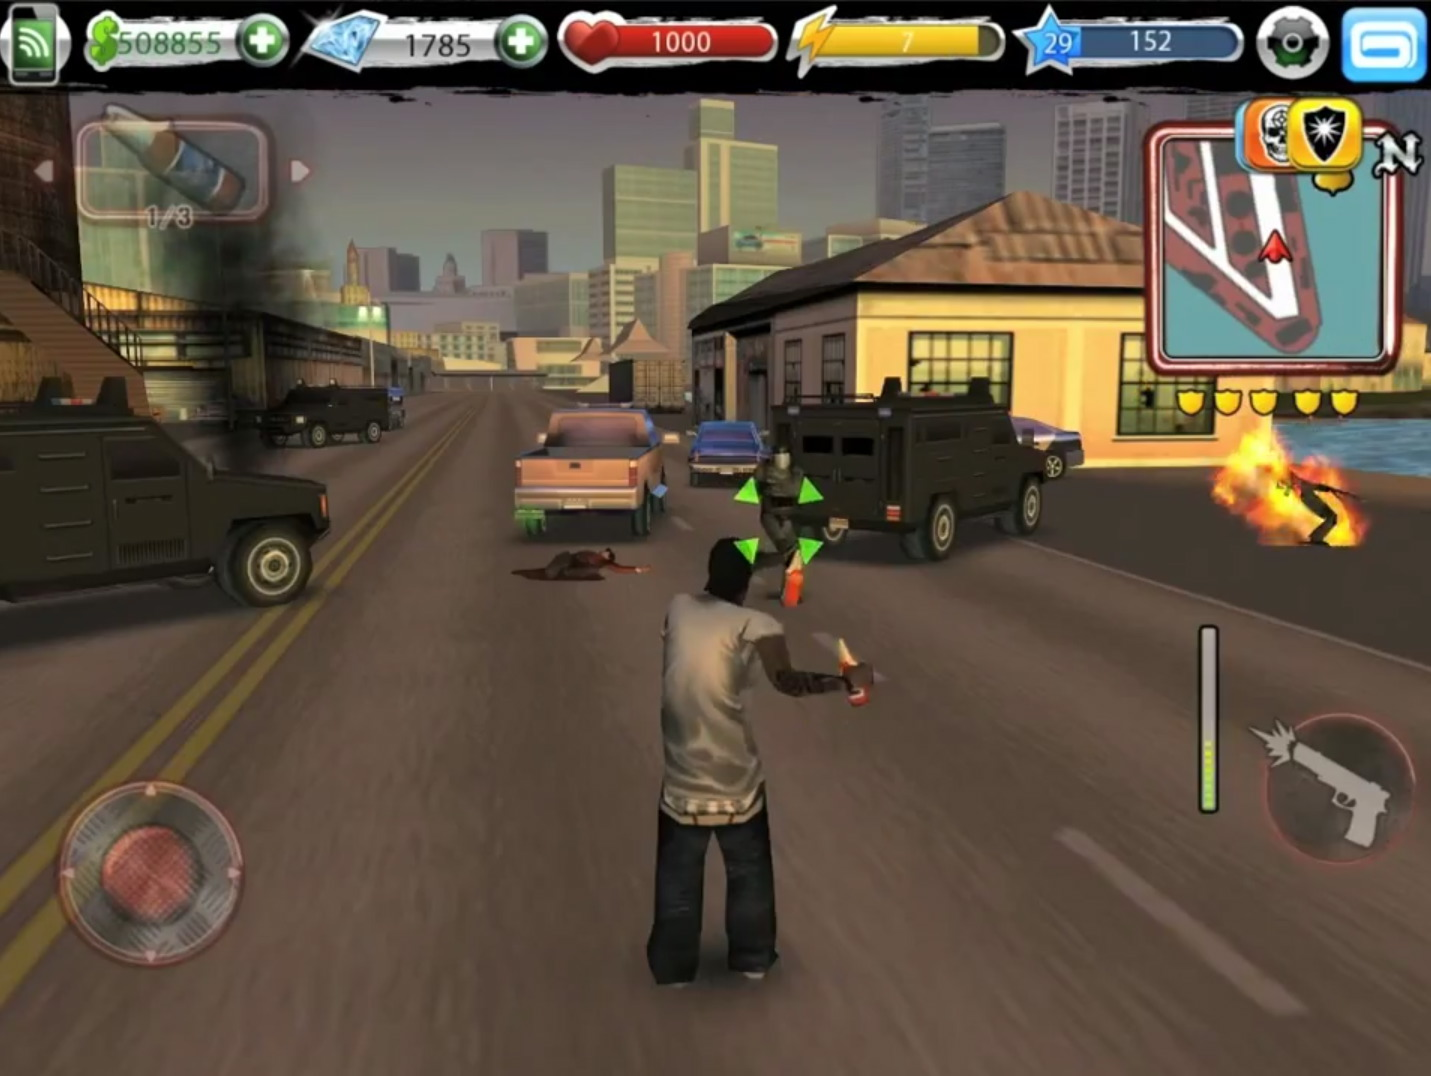 Gameloft bringing Grand Theft Auto-esque free-to-play title Urban Crime to iOS on January 12th